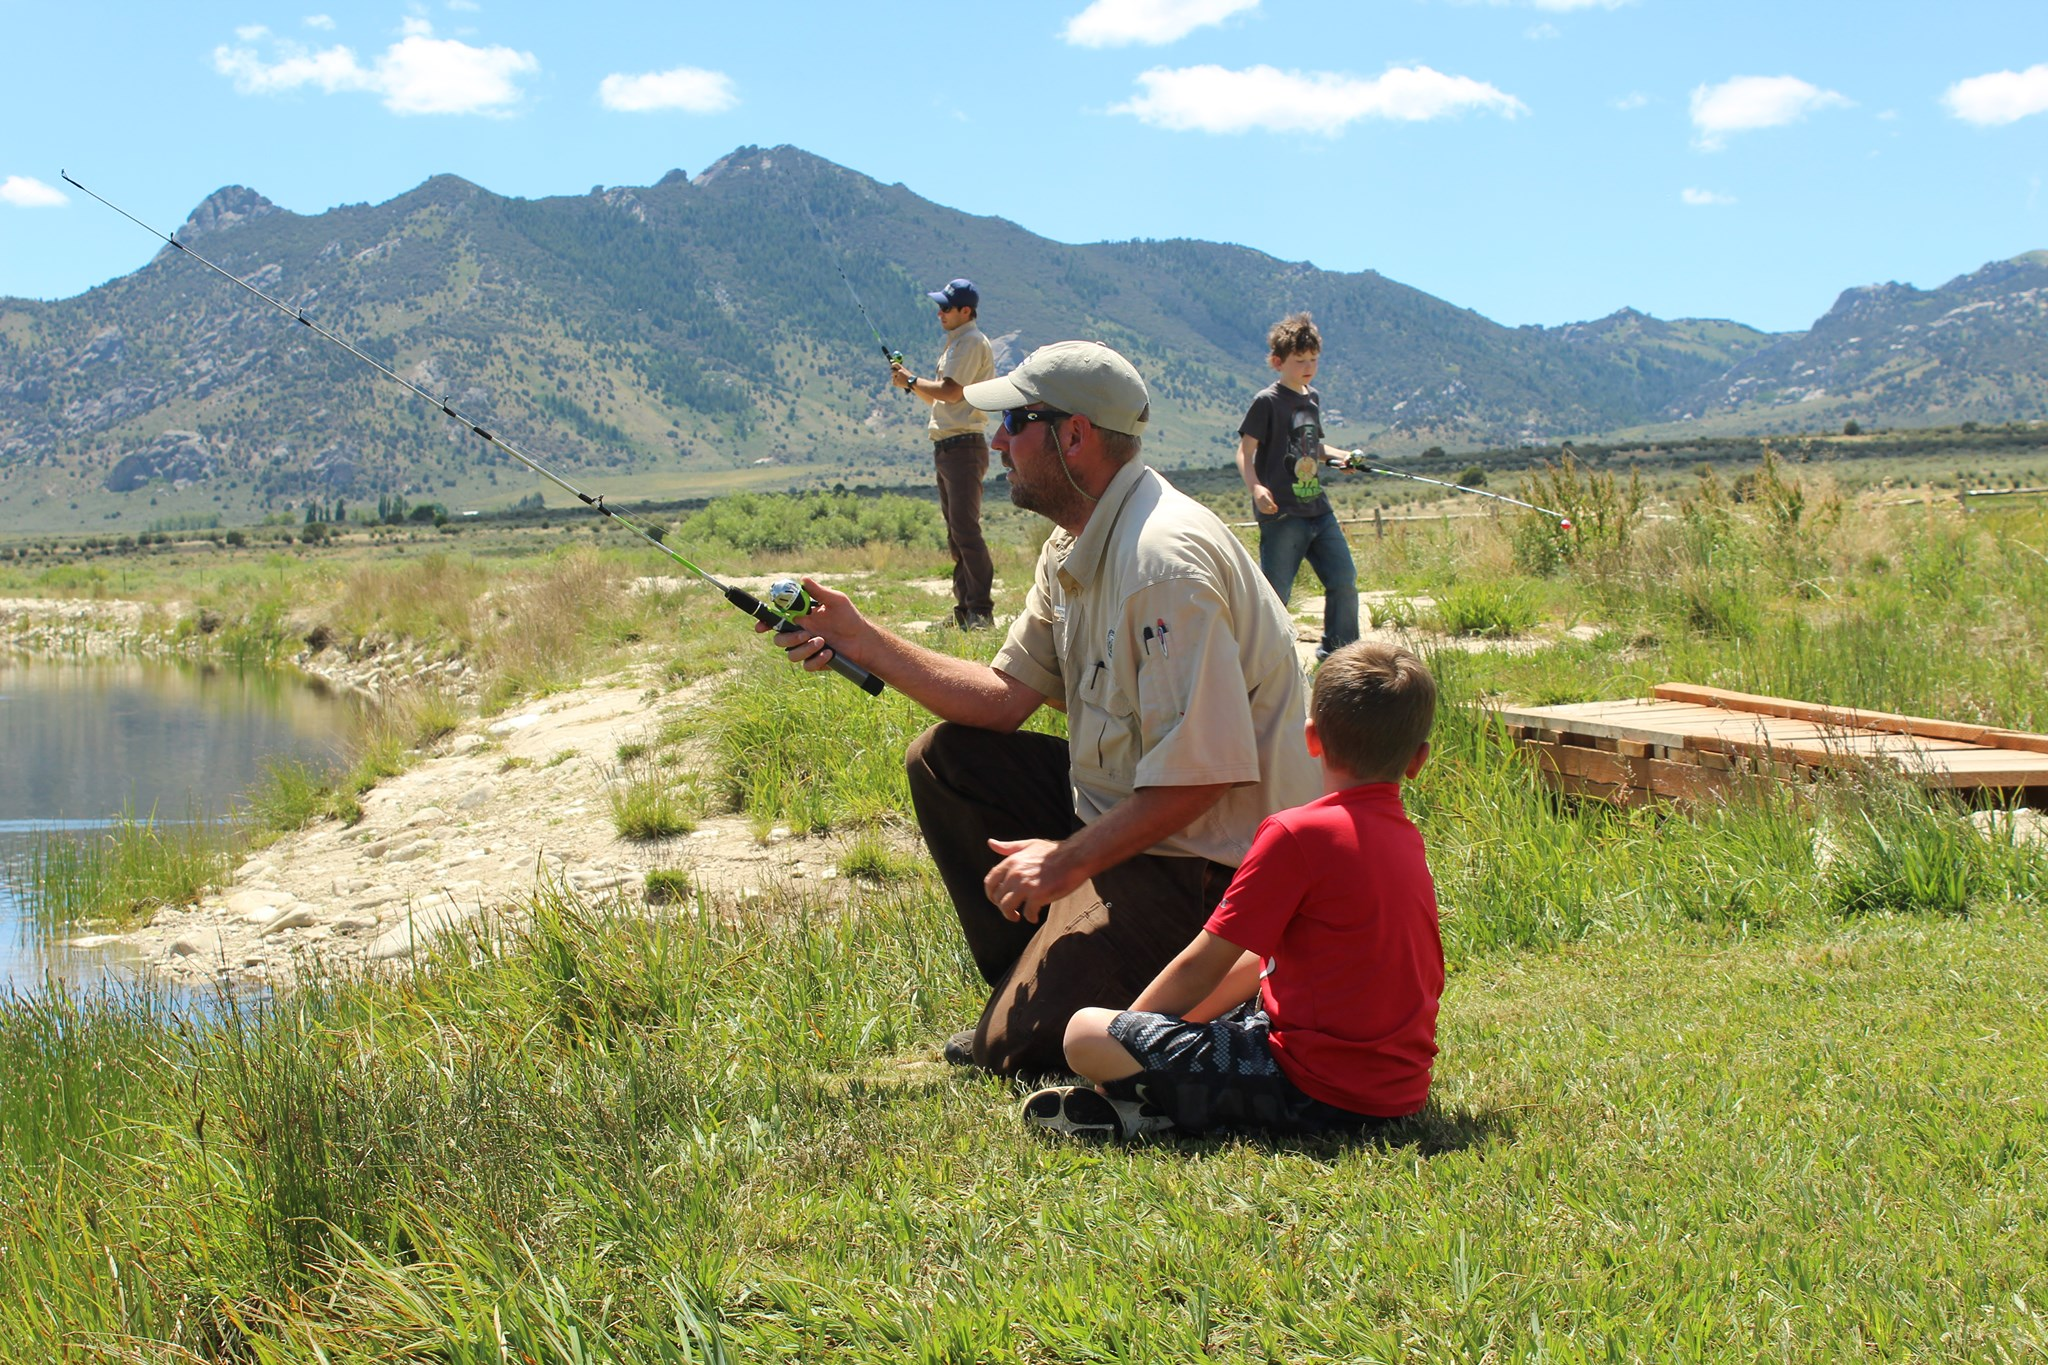 Park rangers teaching children how to fish. Image shows two rangers and two children